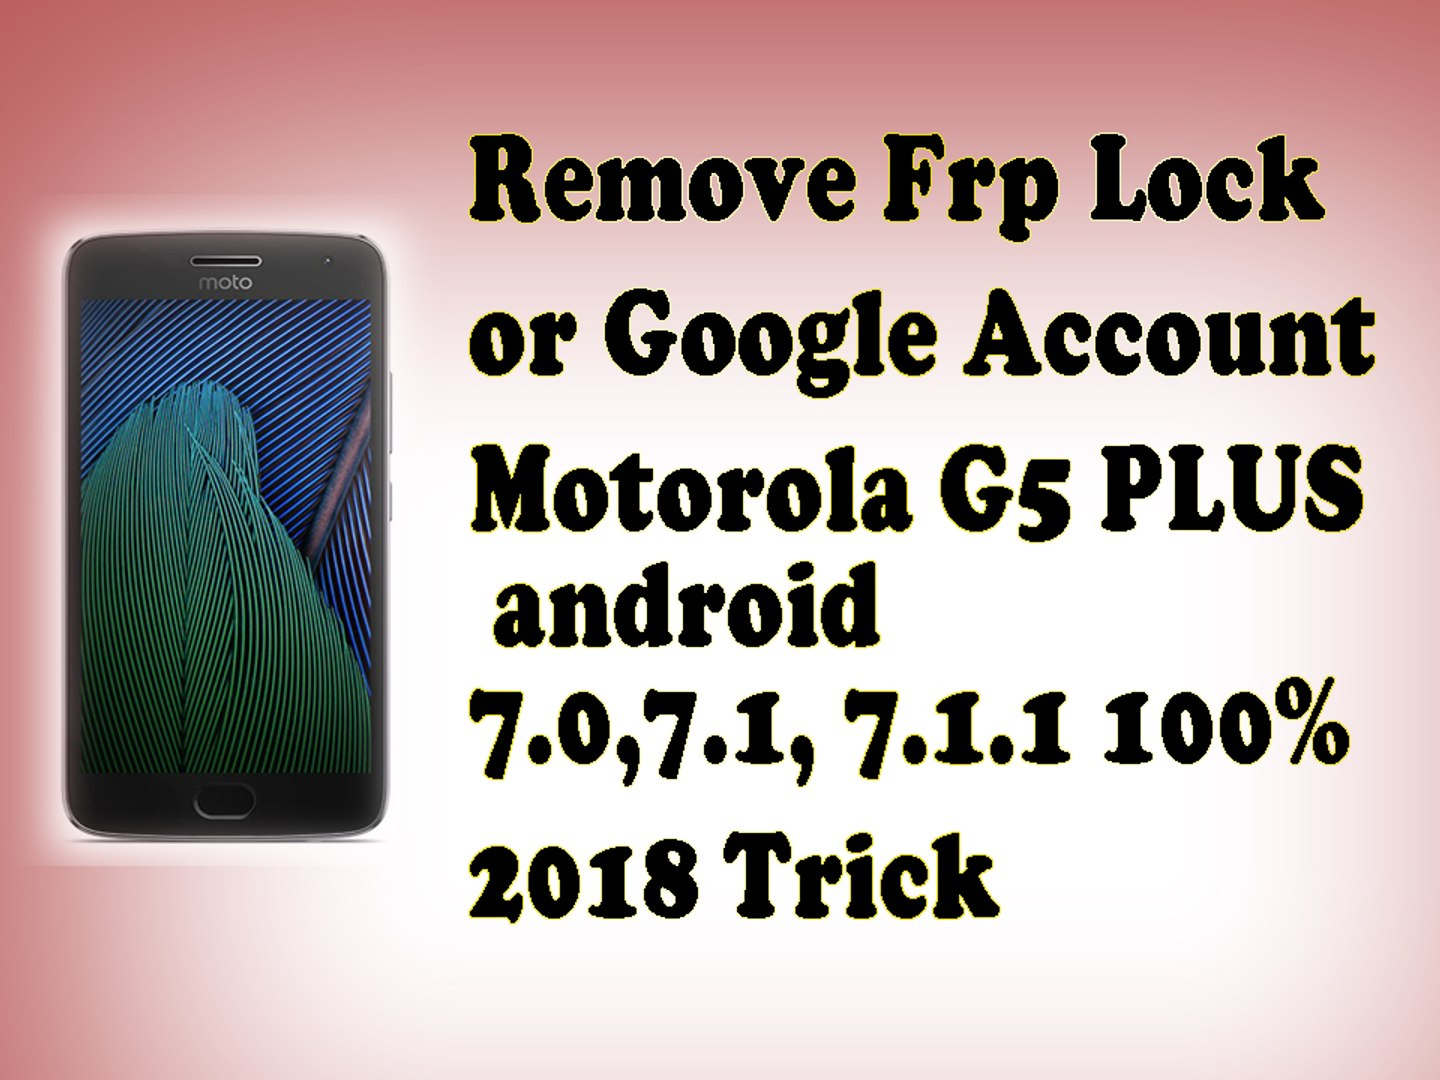 how to remove frp lock apk Motorola G5 Plus bypass google account apk | frp  bypass tool | FRP locK